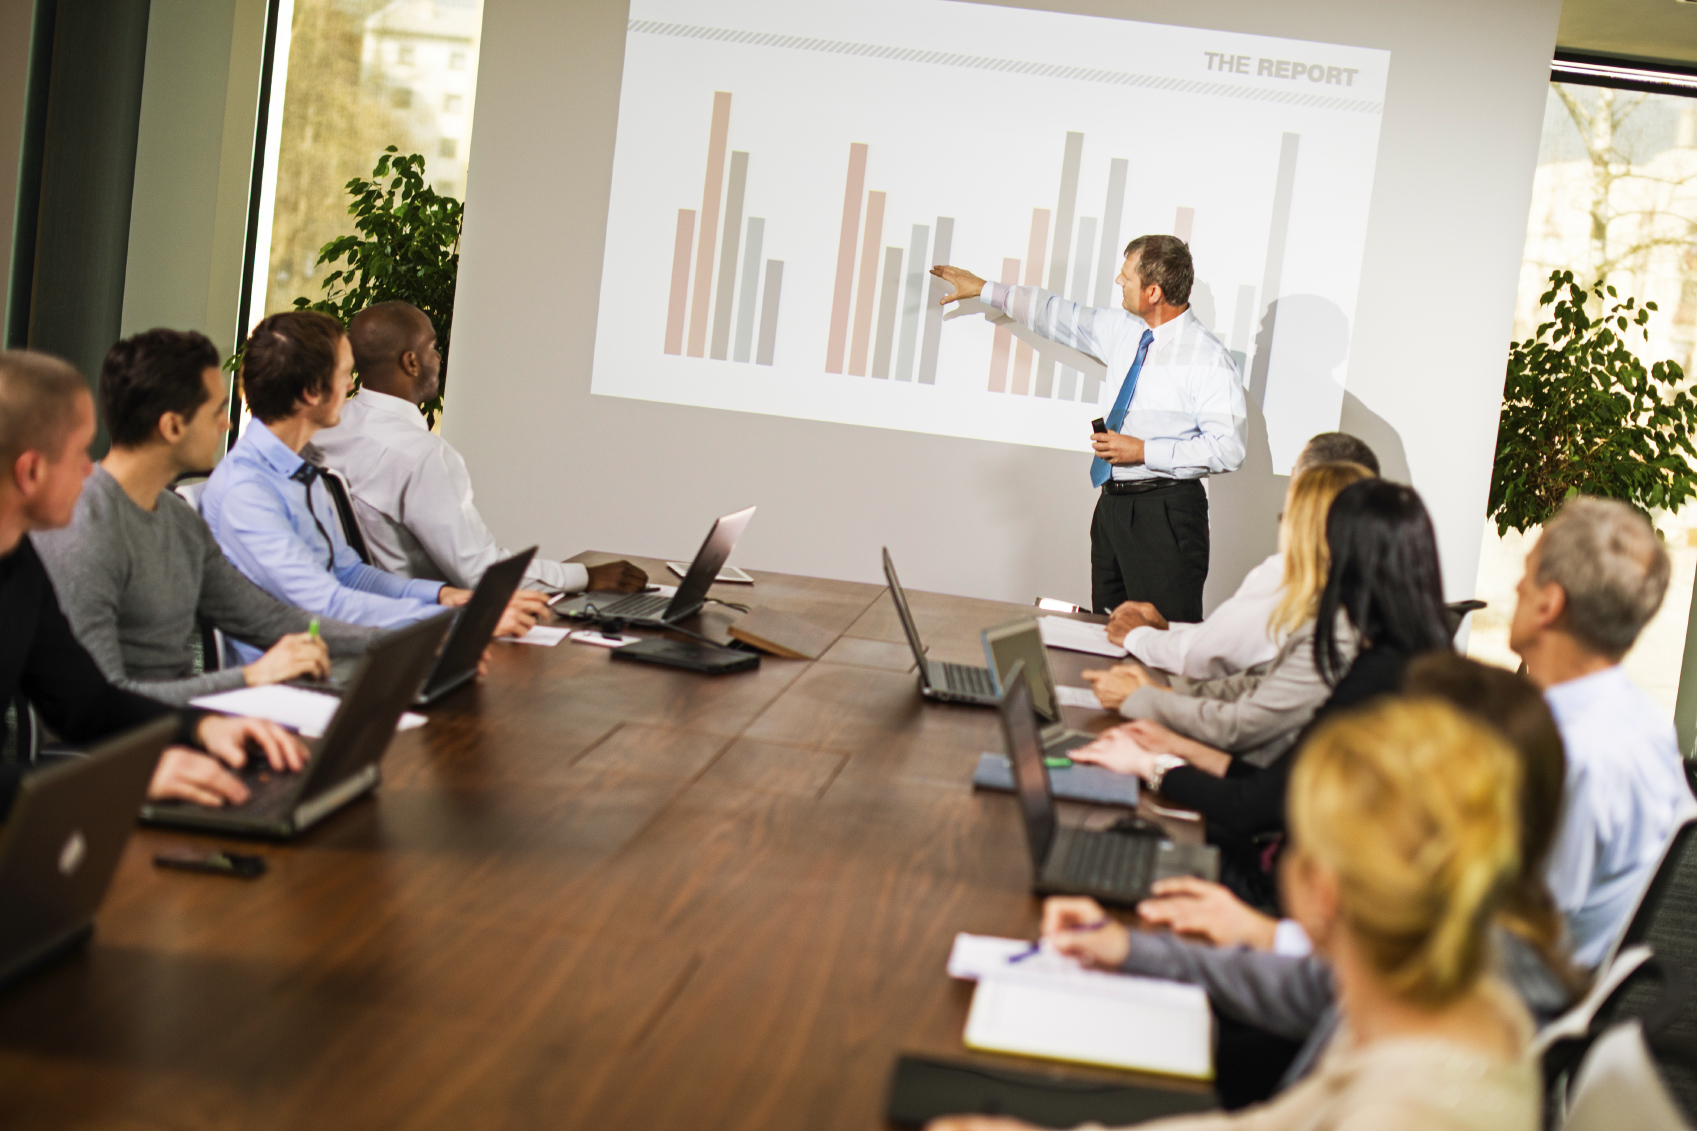 How PowerPoint Presentations Facilitate Improved Office Communications